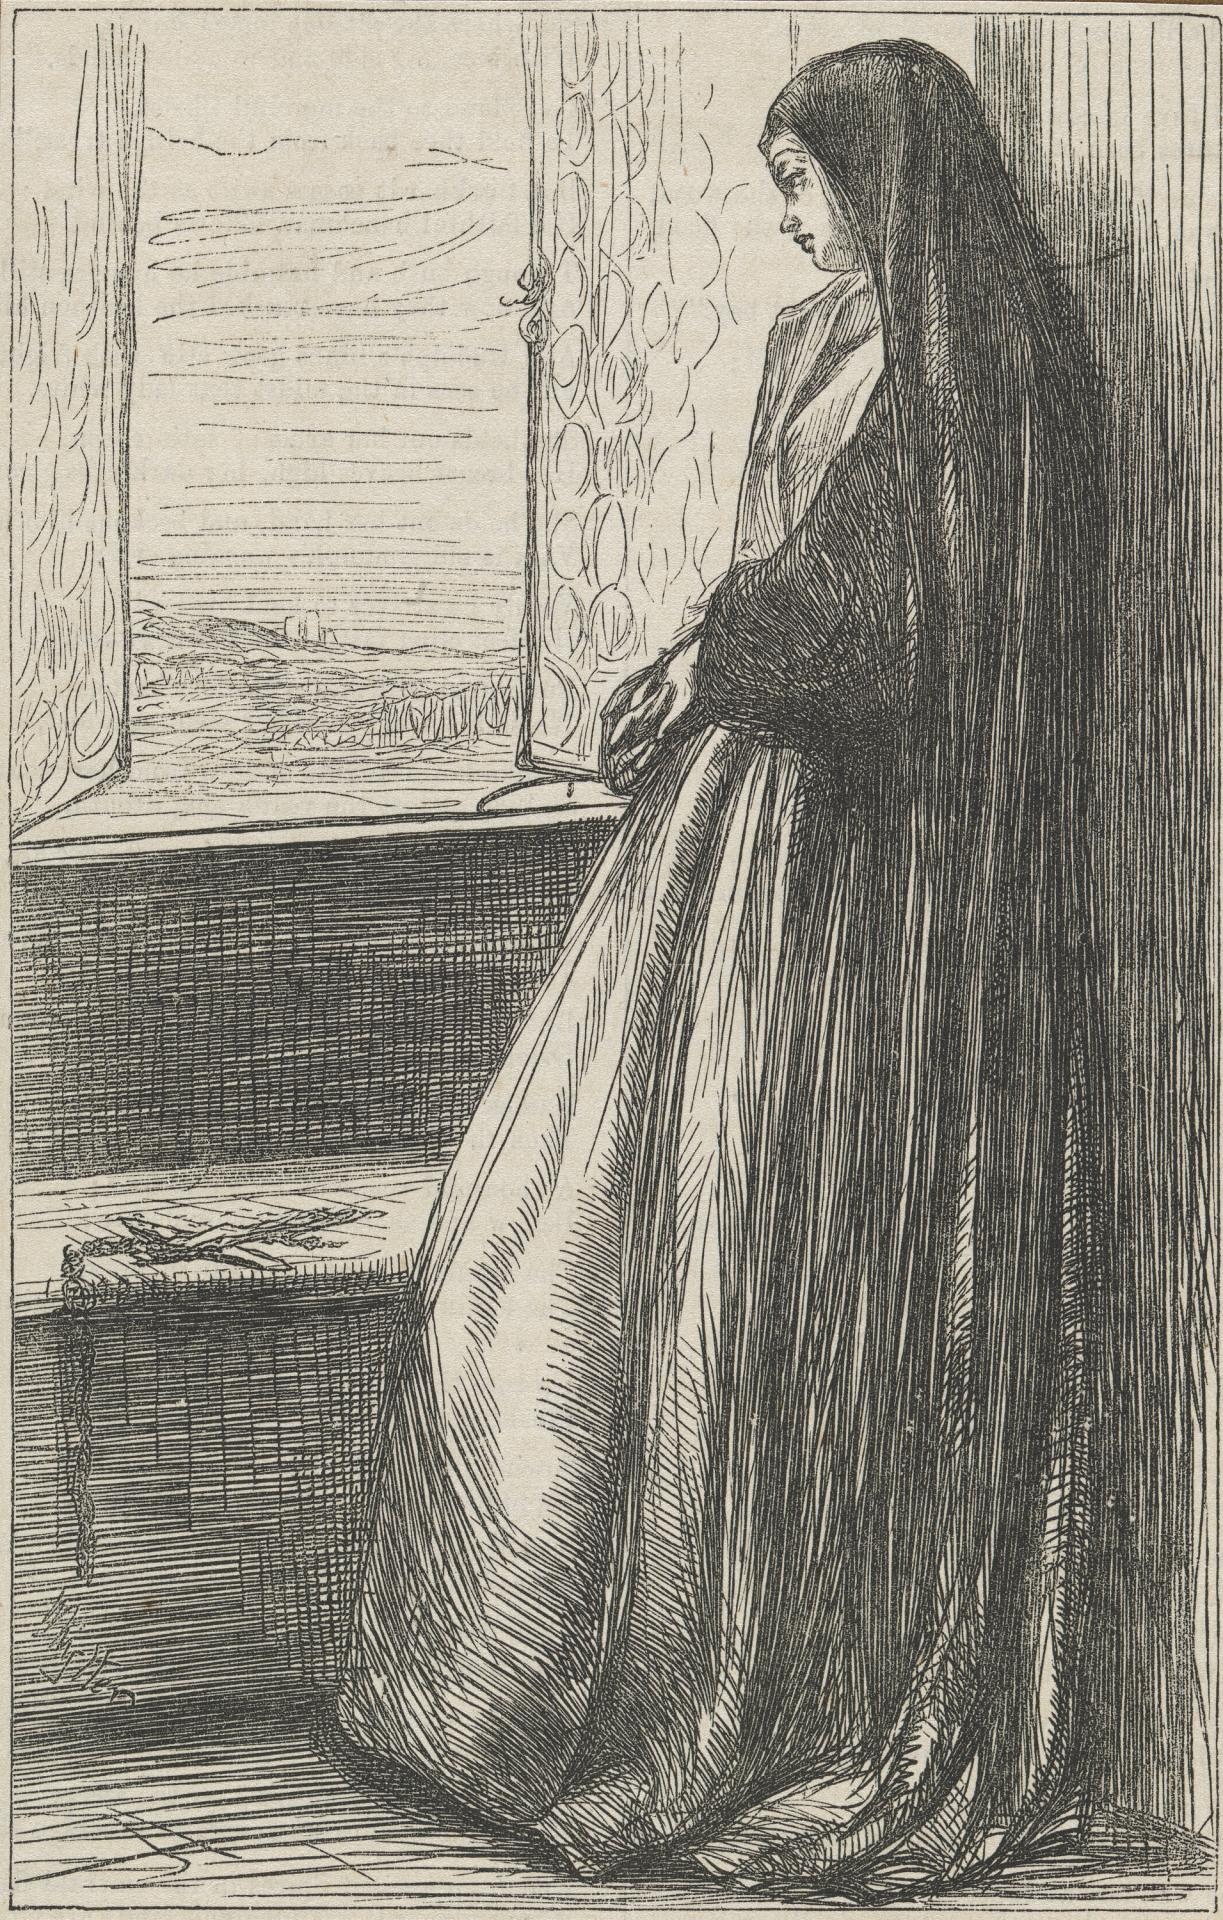 (A nun gazing out of a window)